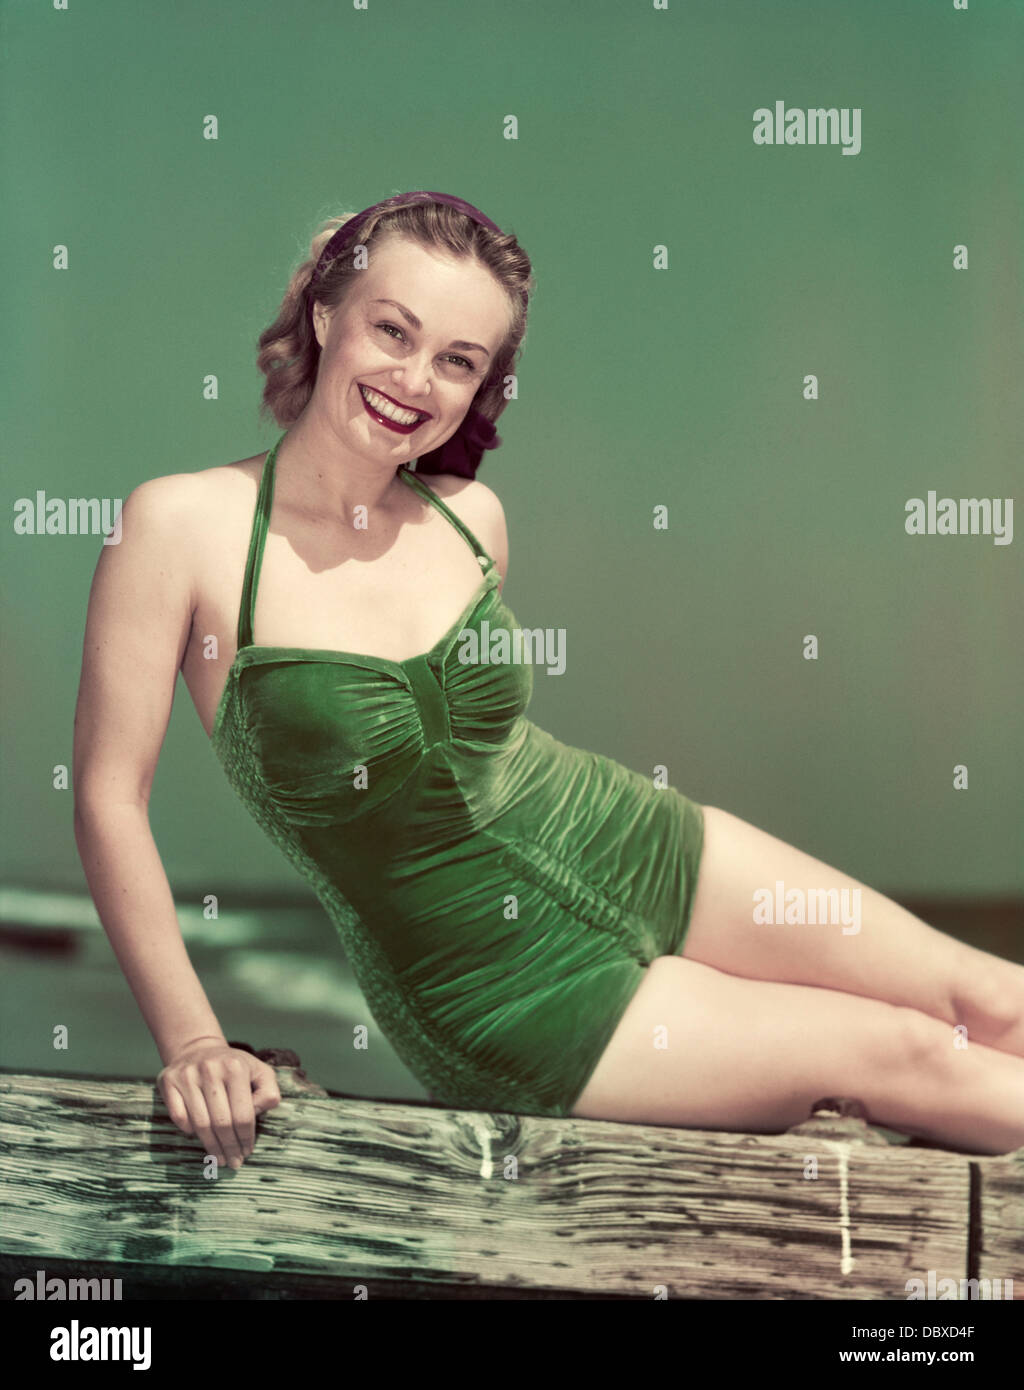 1940s PORTRAIT SMILING WOMAN WEARING GREEN VELVET BATHING SUIT SITTING POSING ON DIVING BOARD - Stock Image